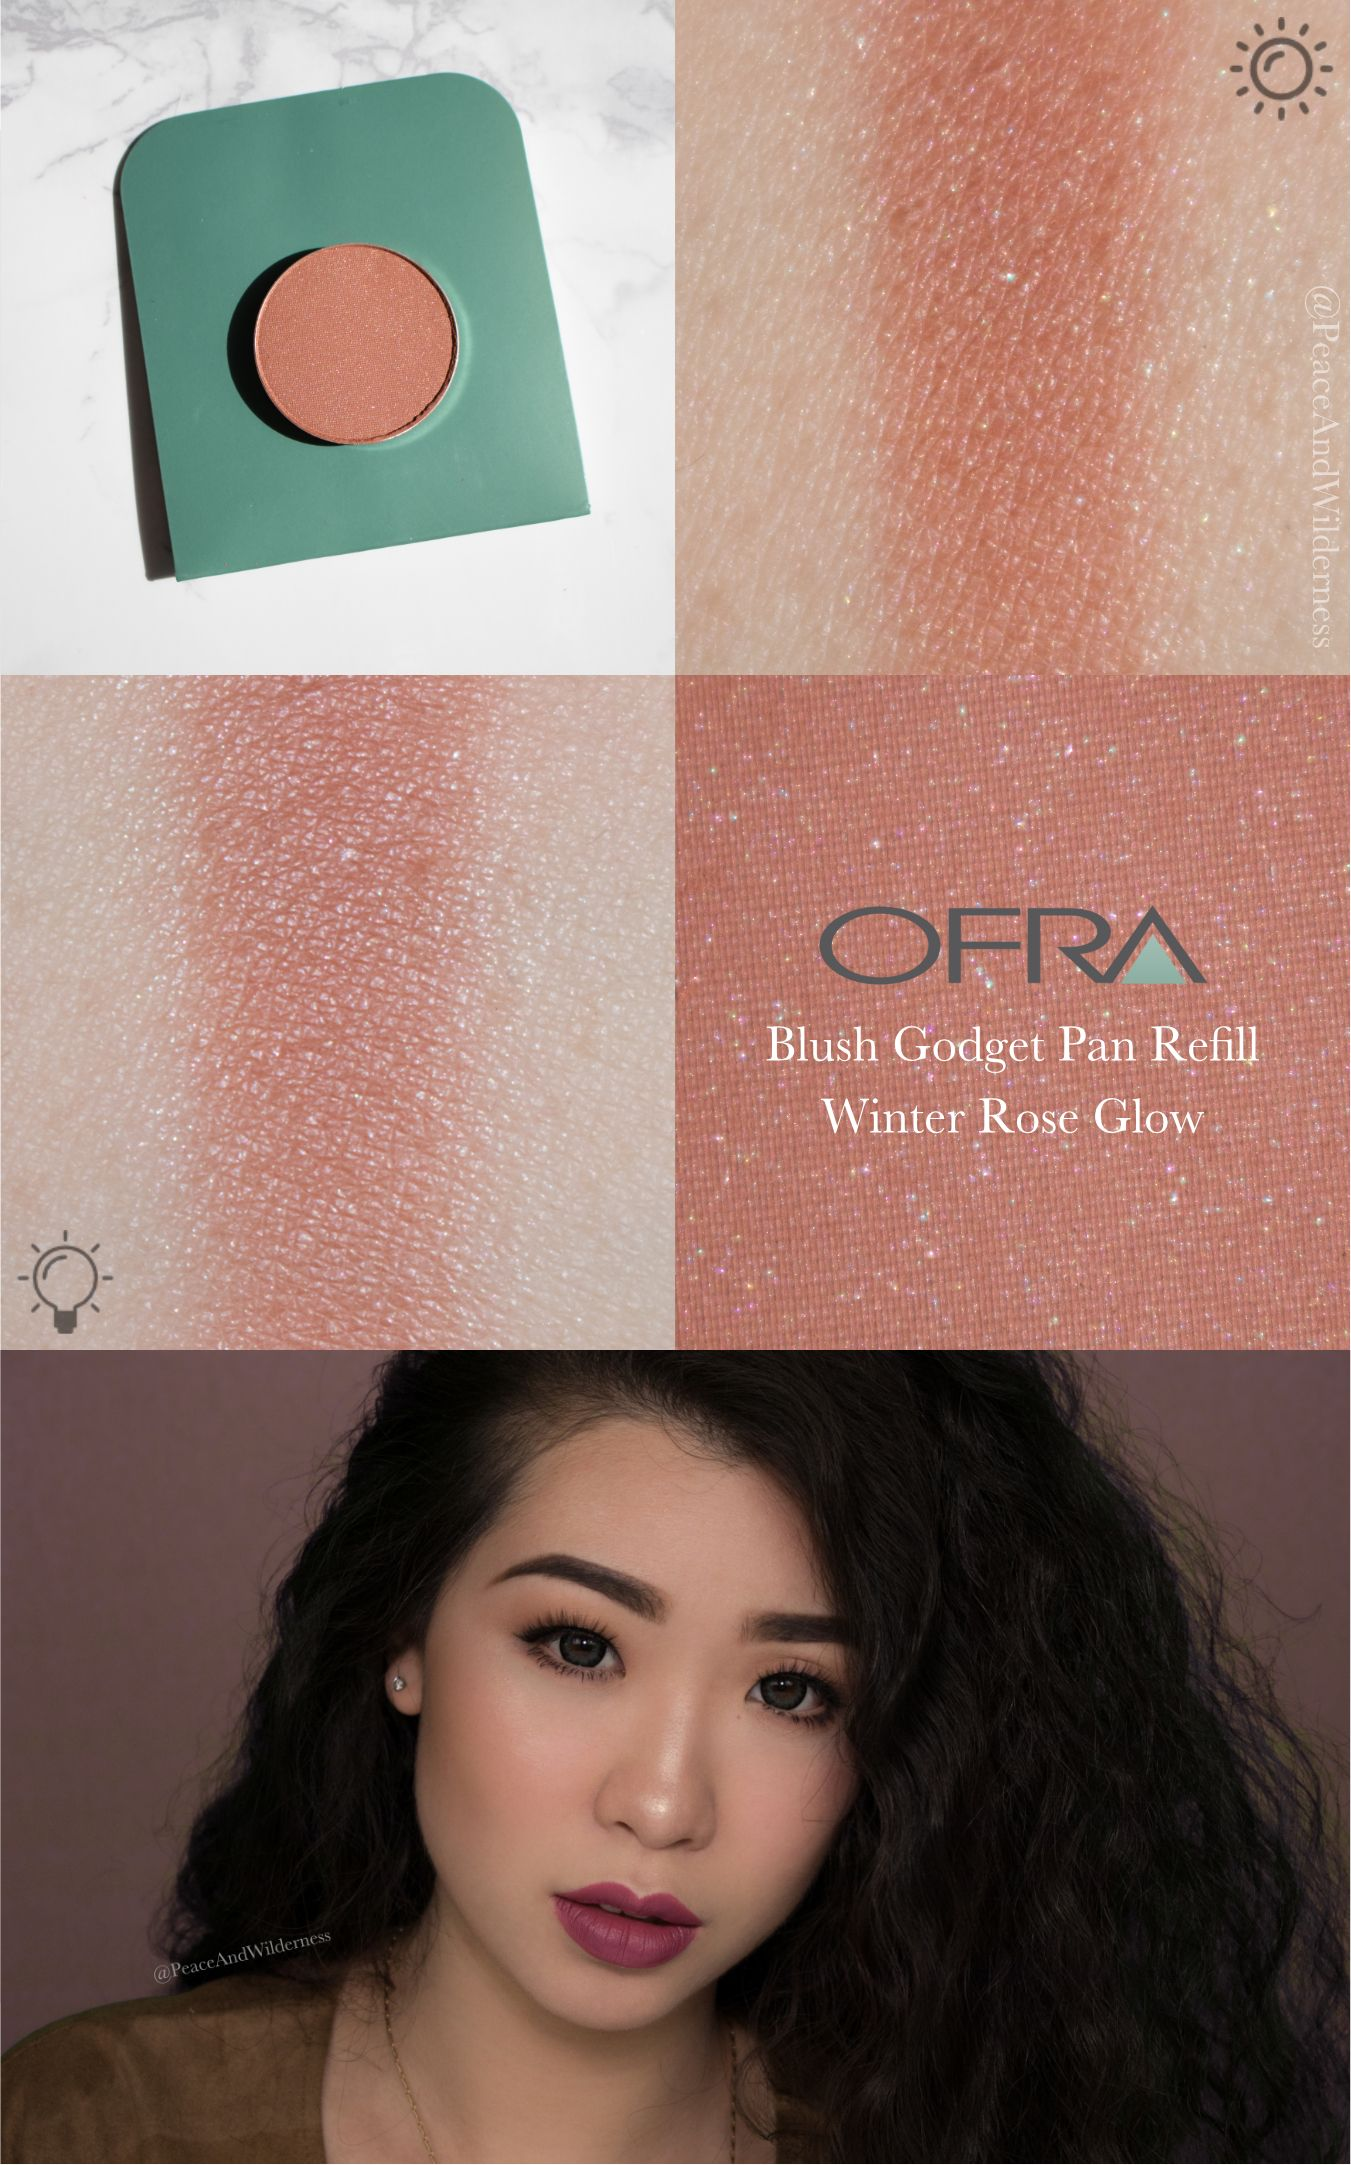 3D Pyramid Blush by ofra #12